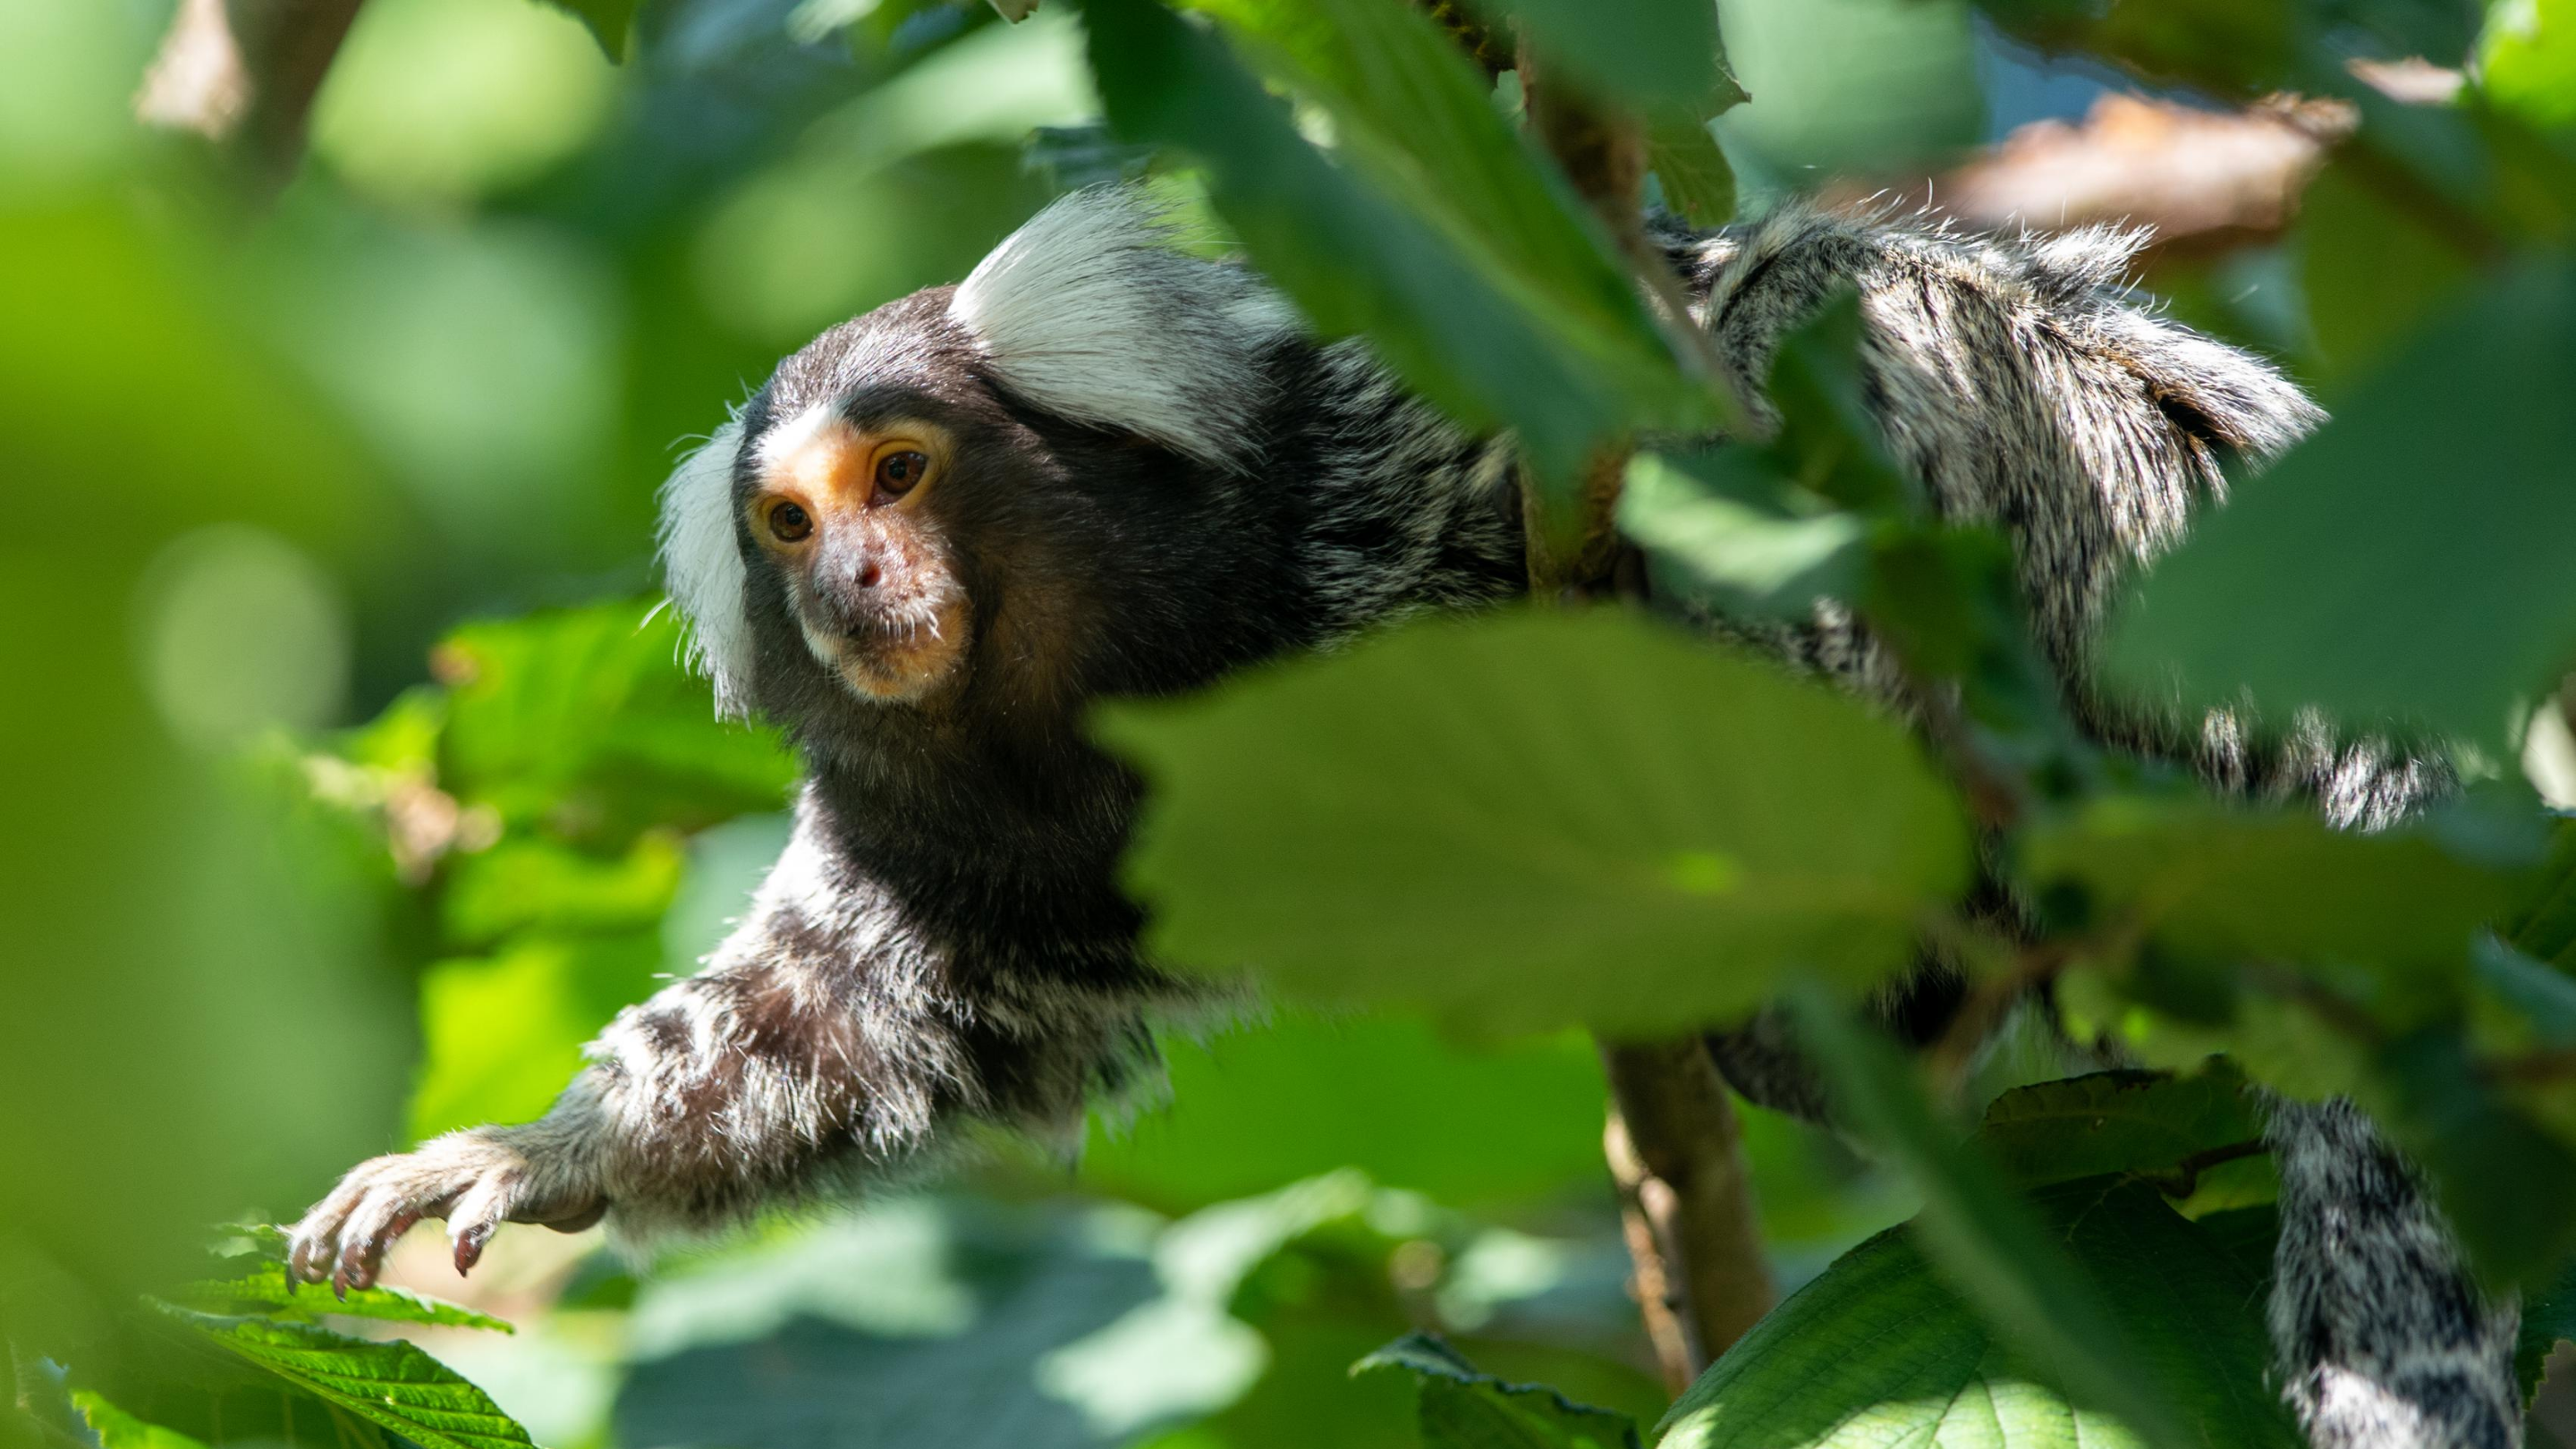 Surrounded by green leaves, marmoset clings to a branch